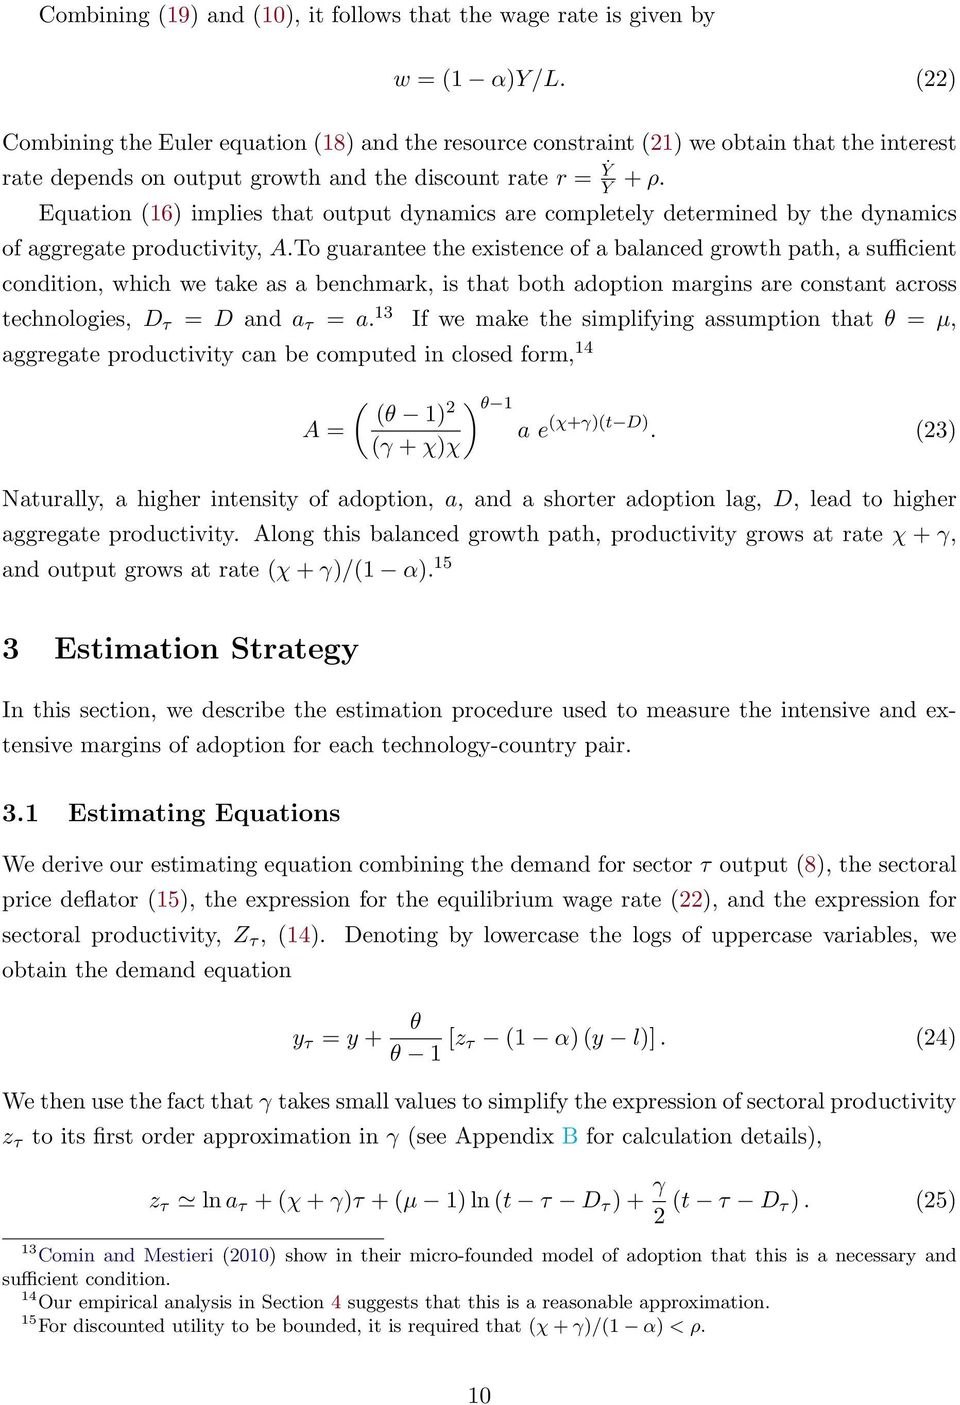 Equation (16) implies that output dynamics are completely determined by the dynamics of aggregate productivity, A.